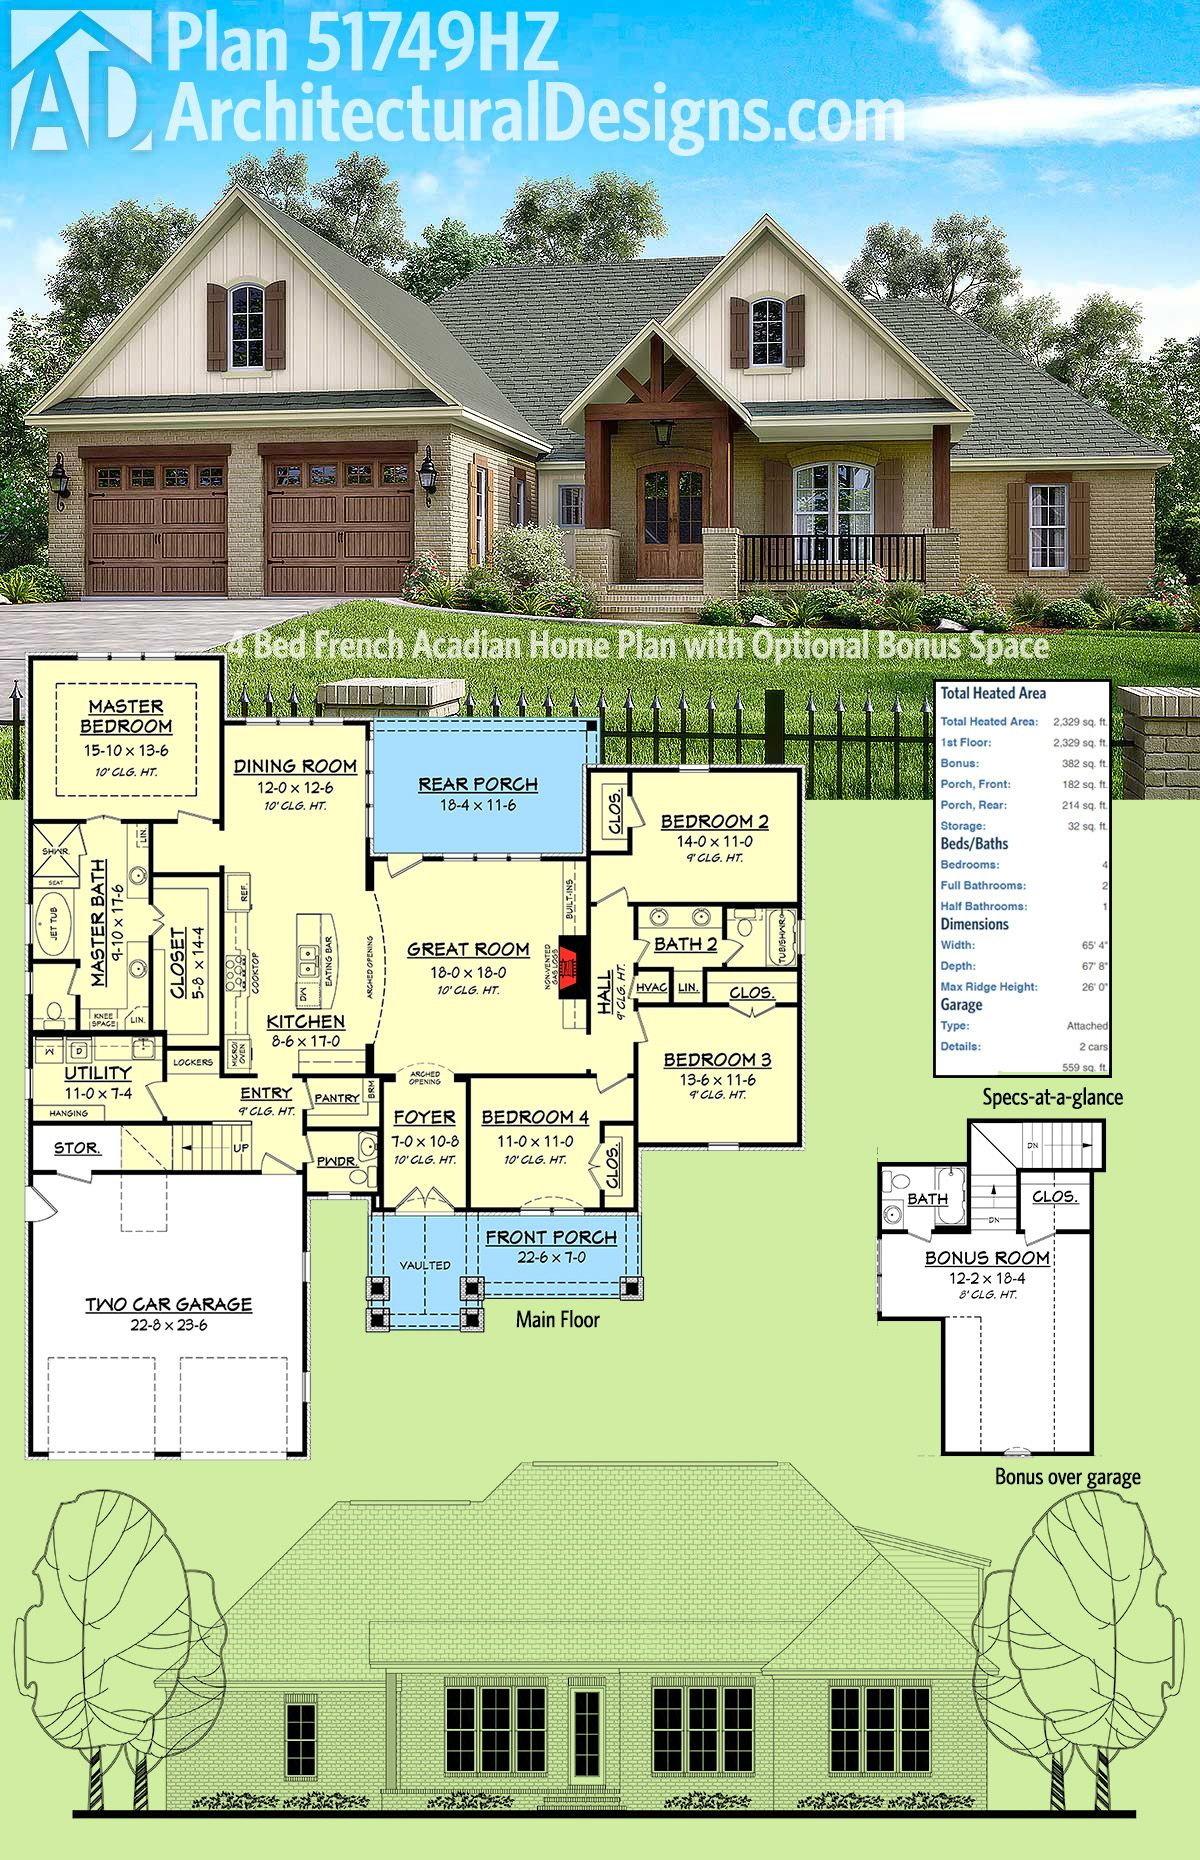 Plan 51749hz Four Bed French Acadian Home Plan With Optional